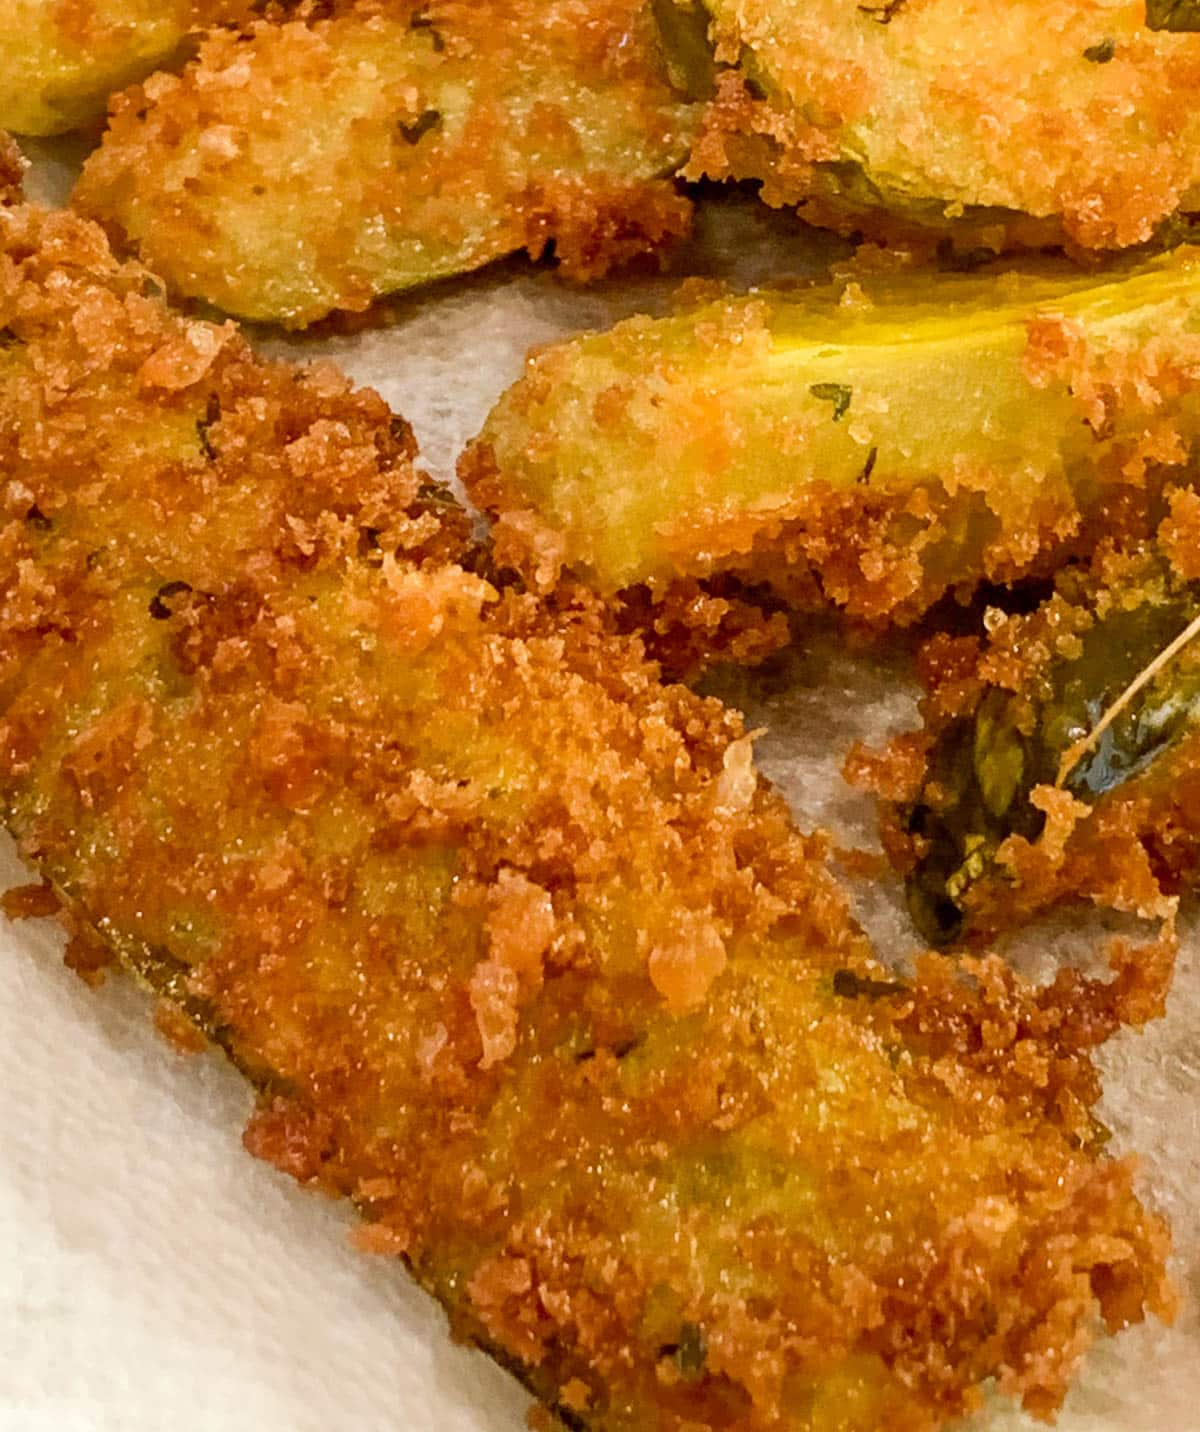 closeup of deep fried pickles